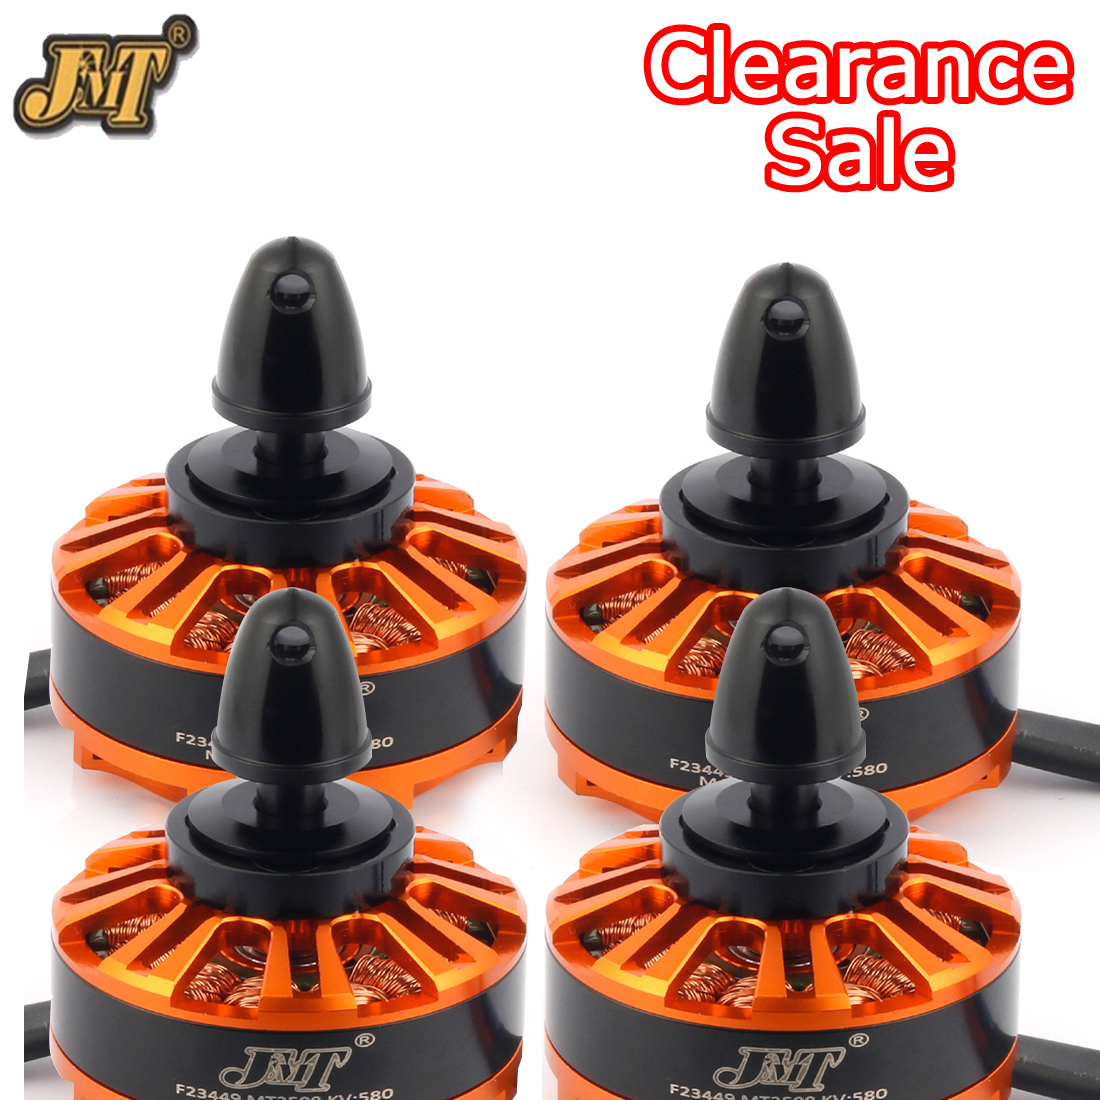 4Pcs/Set 3508 580KV Brushless Motor 3-6S JMT MT3508 Disk Motor High Quality For DIY RC Quadcopter Multi-Axis Drone Accessories